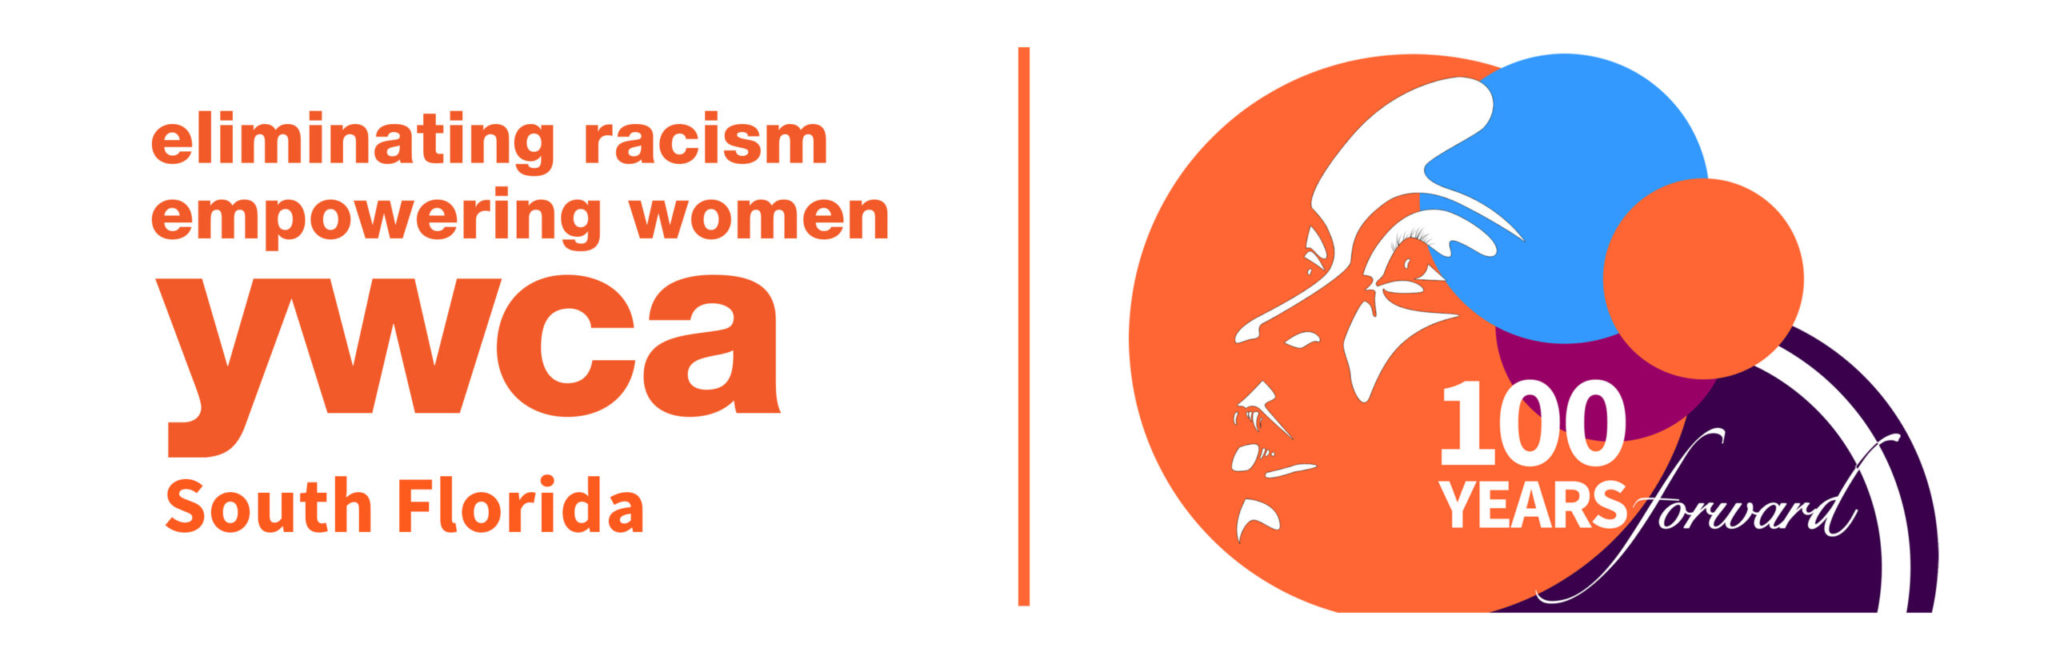 YWCA South Florida